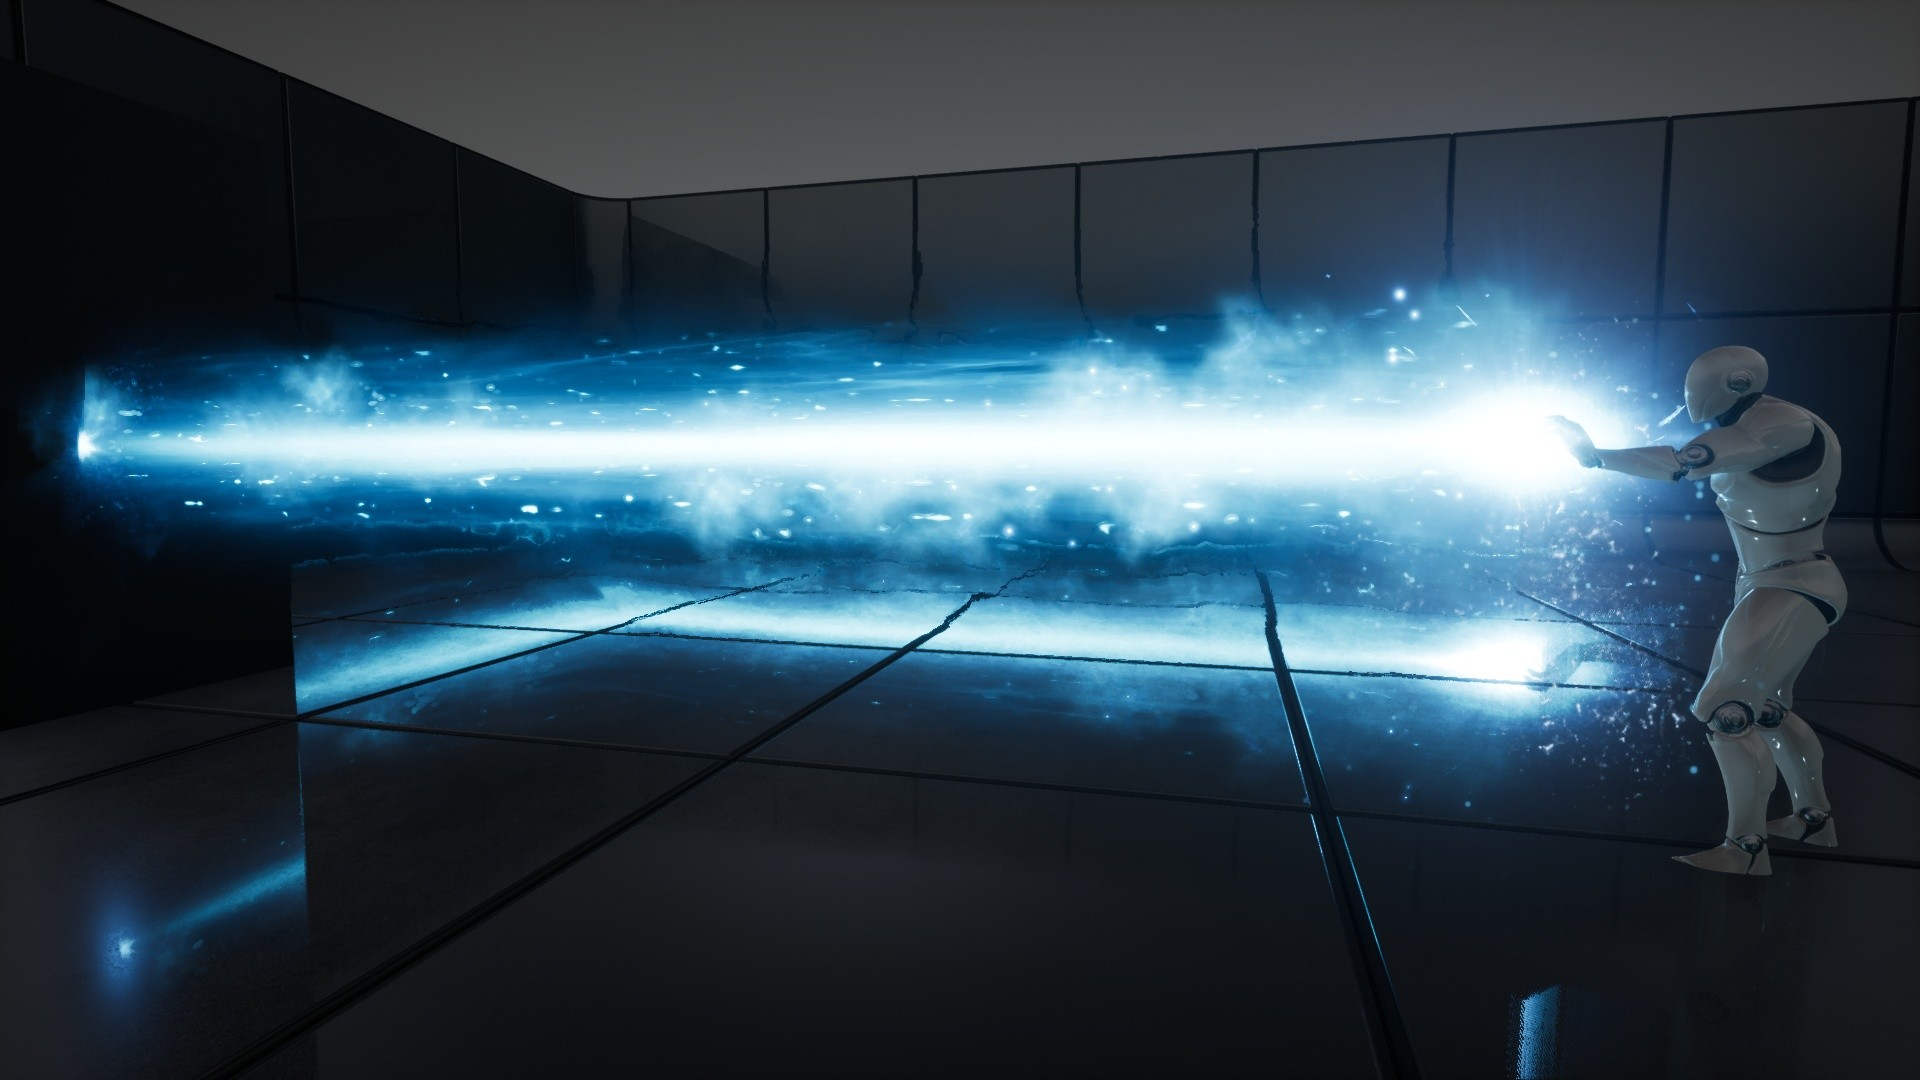 ArtStation - UE4 - VFX - Good Particle : Beam And Ray, U N E A S Y